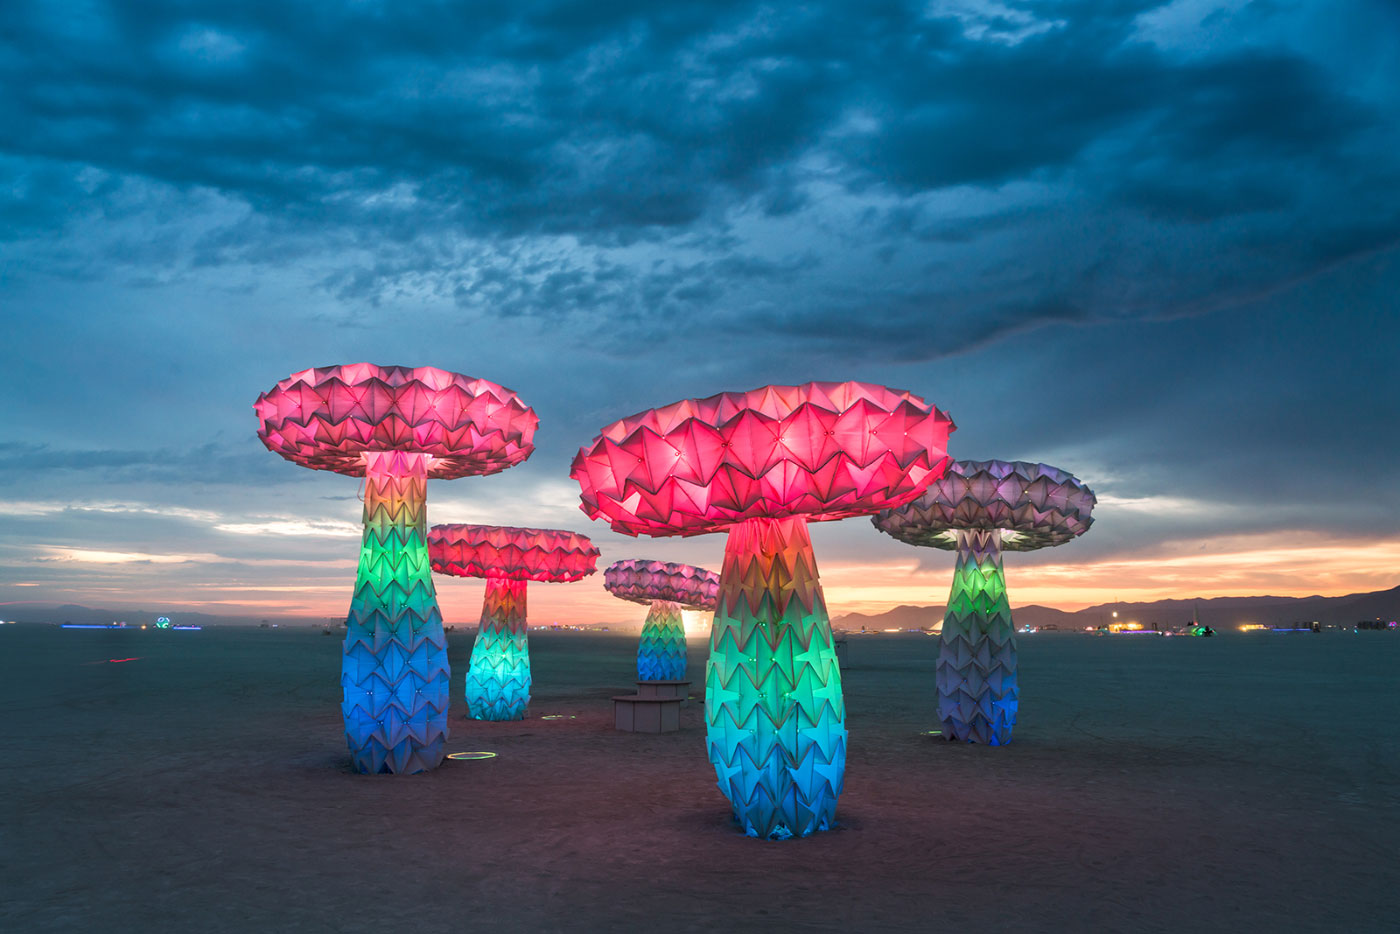 """Shrumen Lumen,"""" a 2016 interactive art installation by FoldHaus will be among the works re-created for No Spectators. (Rene Smith/Renwick Gallery)"""